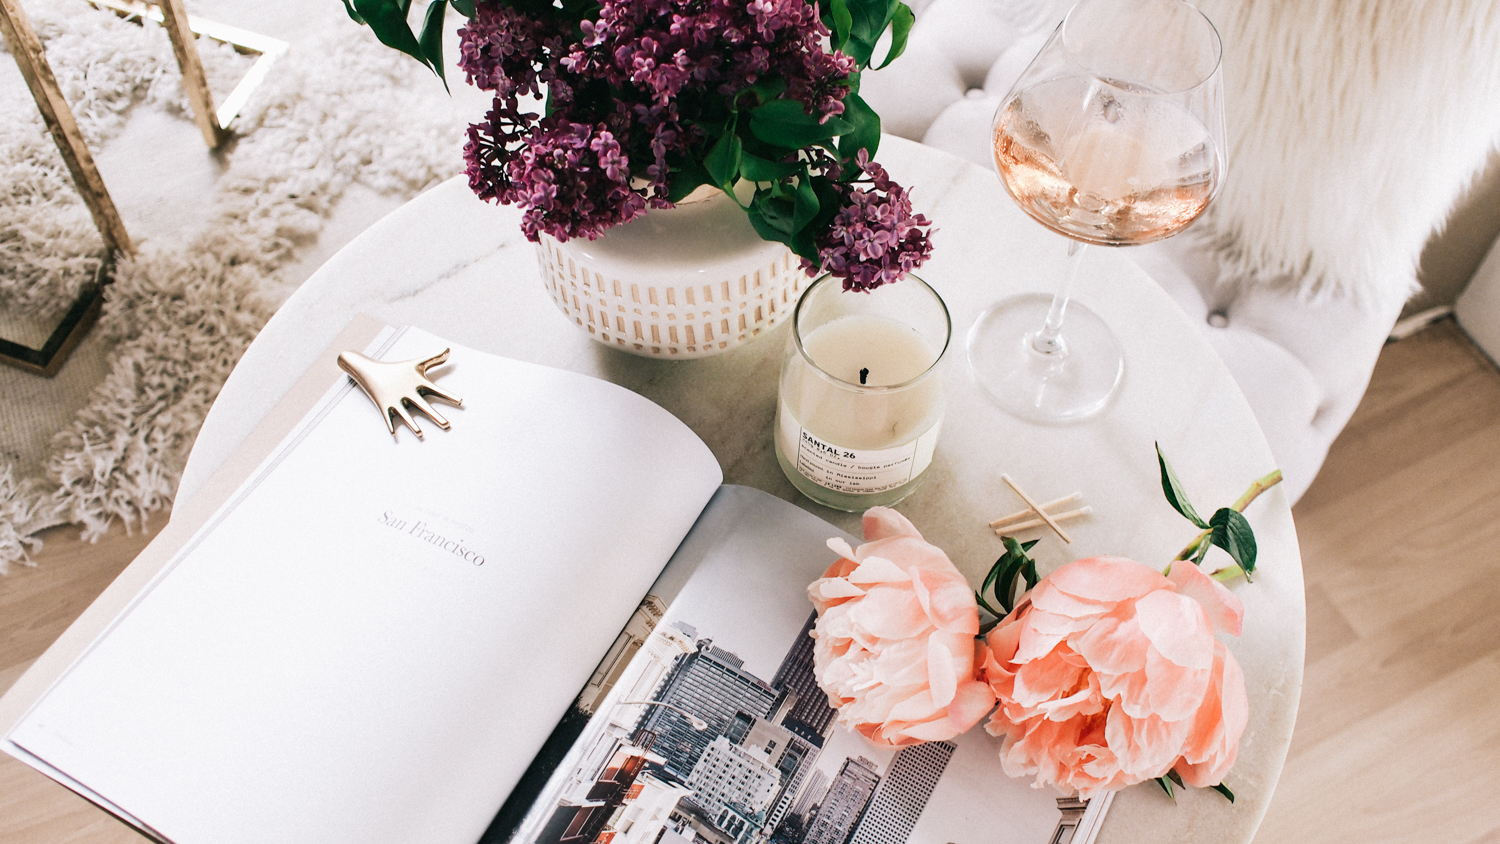 5 tips for styling your entry table